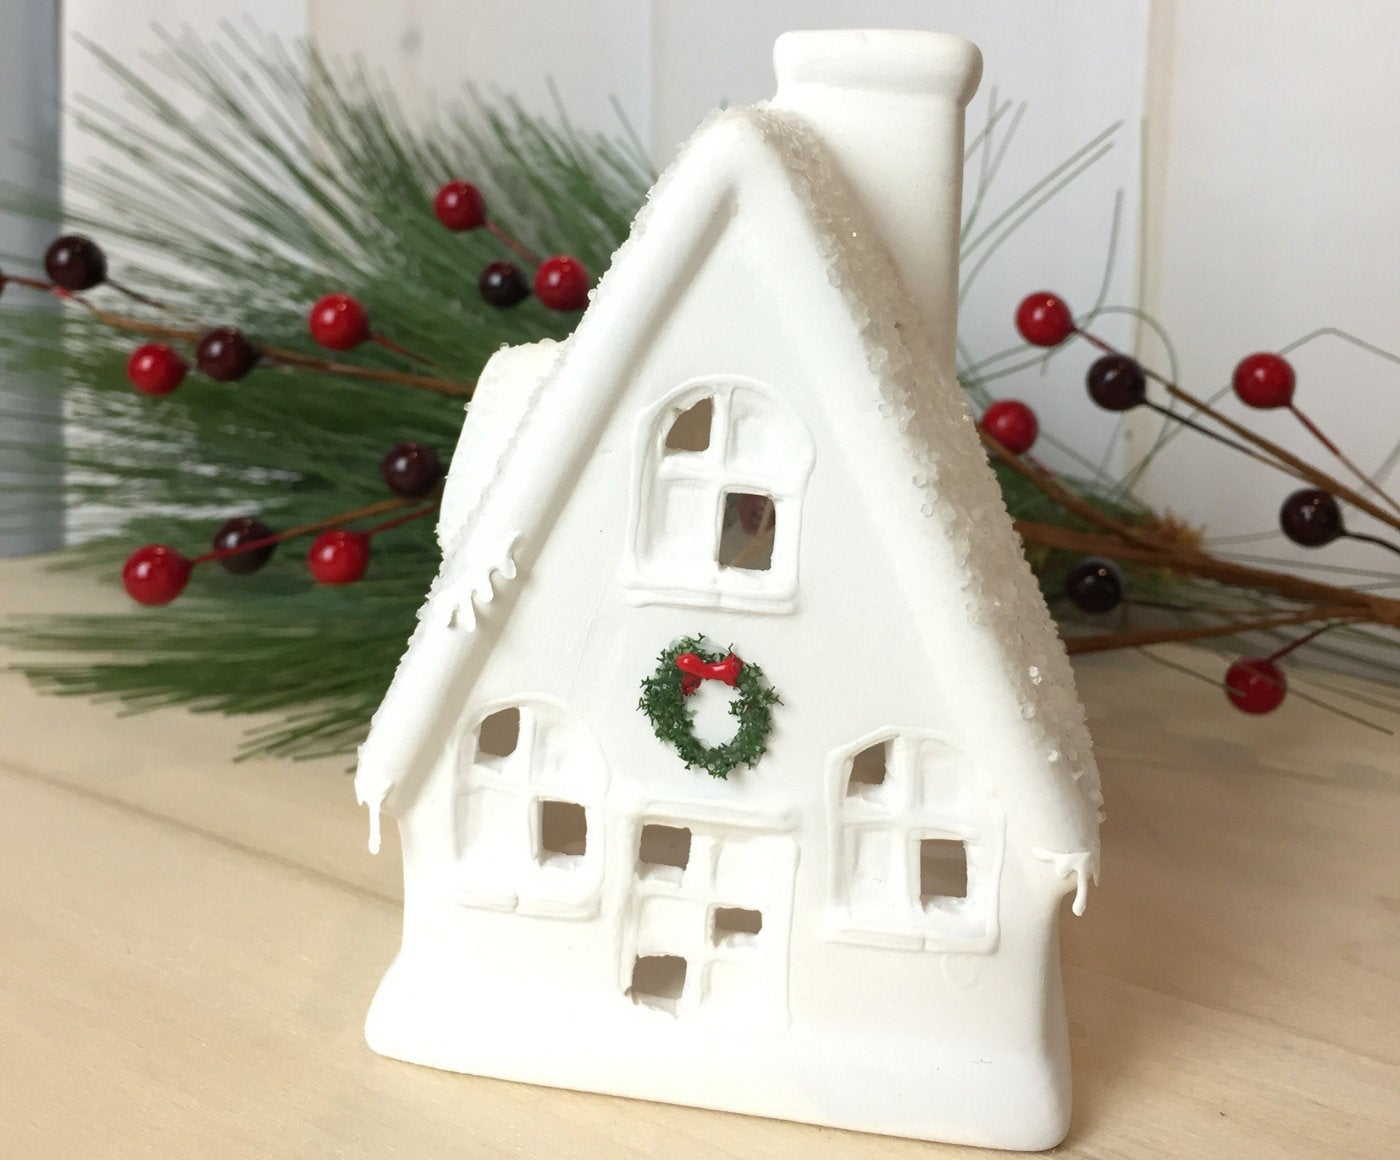 Christmas Village - A-frame House